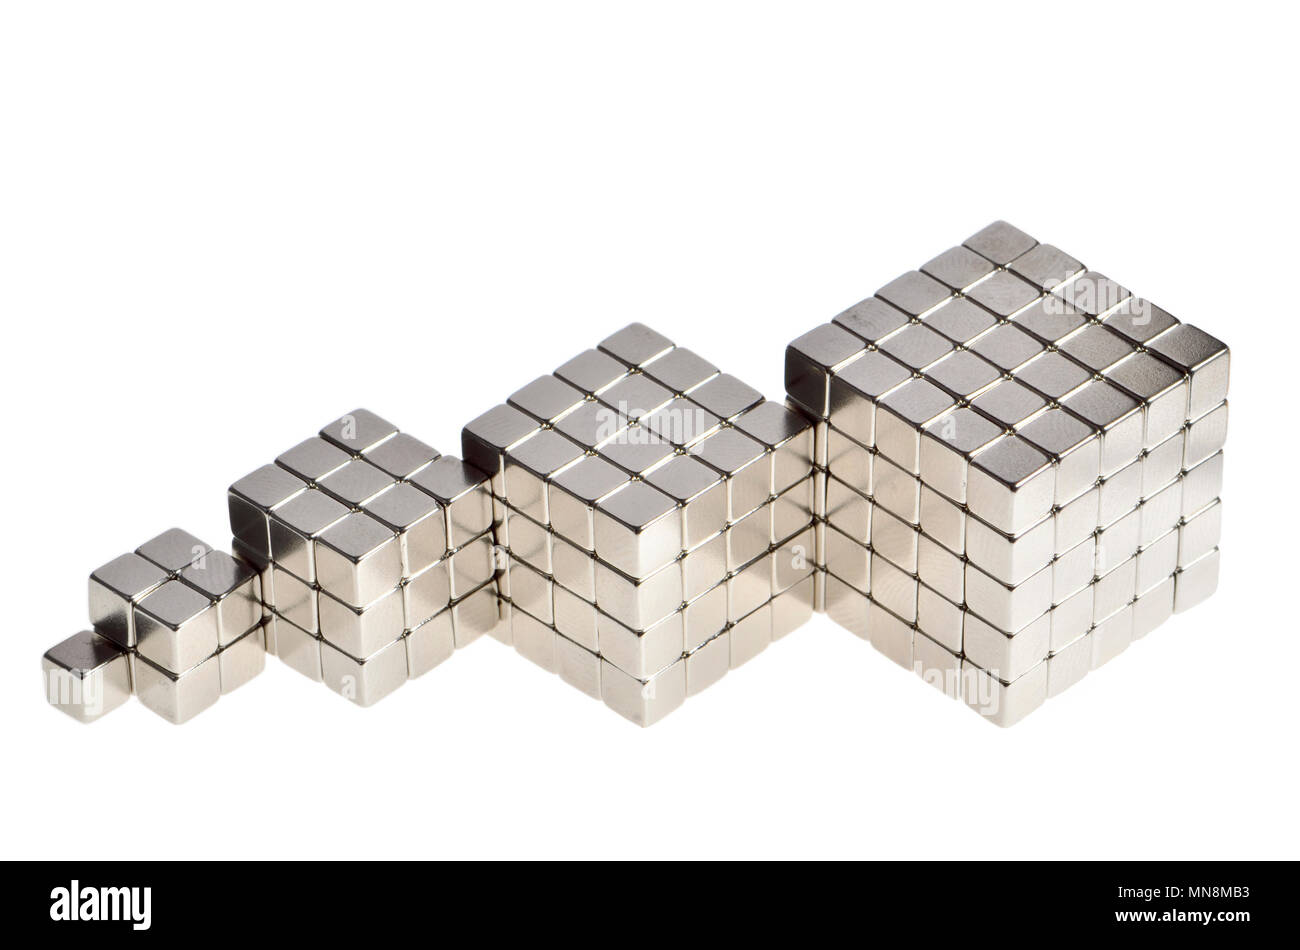 Cube numbers (numbers multiplied by themselves twice) 1 (1 cubed) 8 (2 cubed) 27 (3 cubed) 64 (4 cubed) 125 (5 cubed) - Stock Image